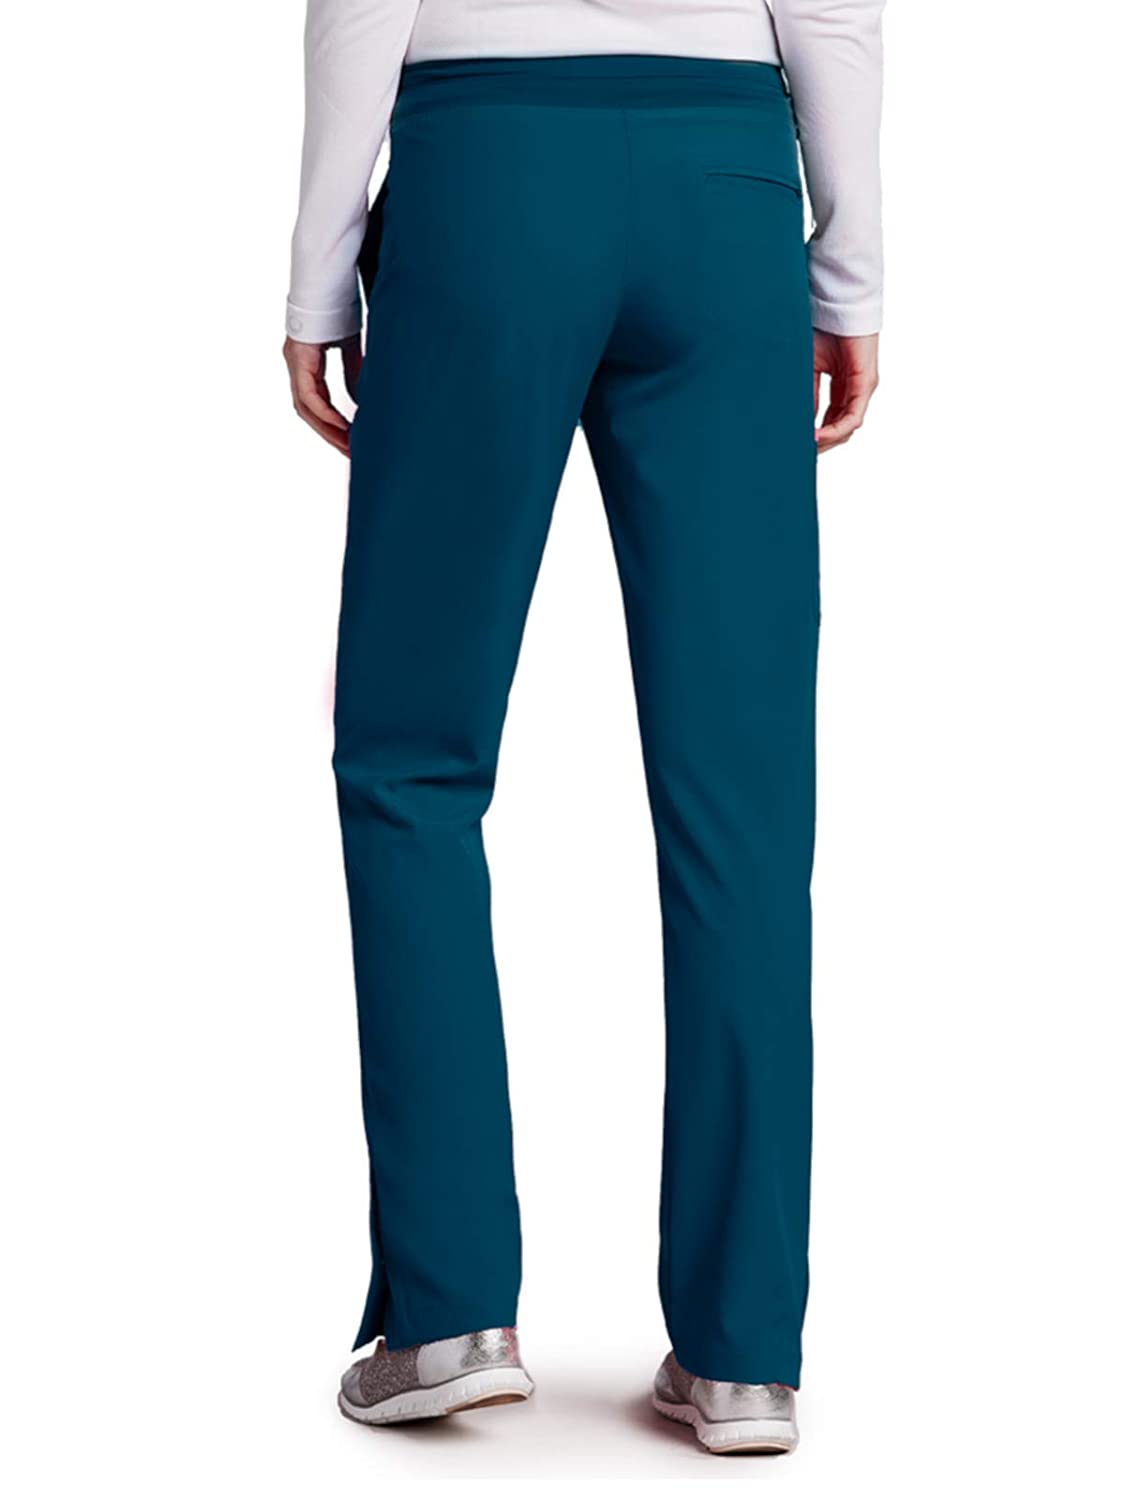 ff8f12cecd2 Amazon.com: Barco ONE 4-Pocket Cargo Track Pant for Women - 4-Way Stretch  Medical Scrub Pant: Clothing